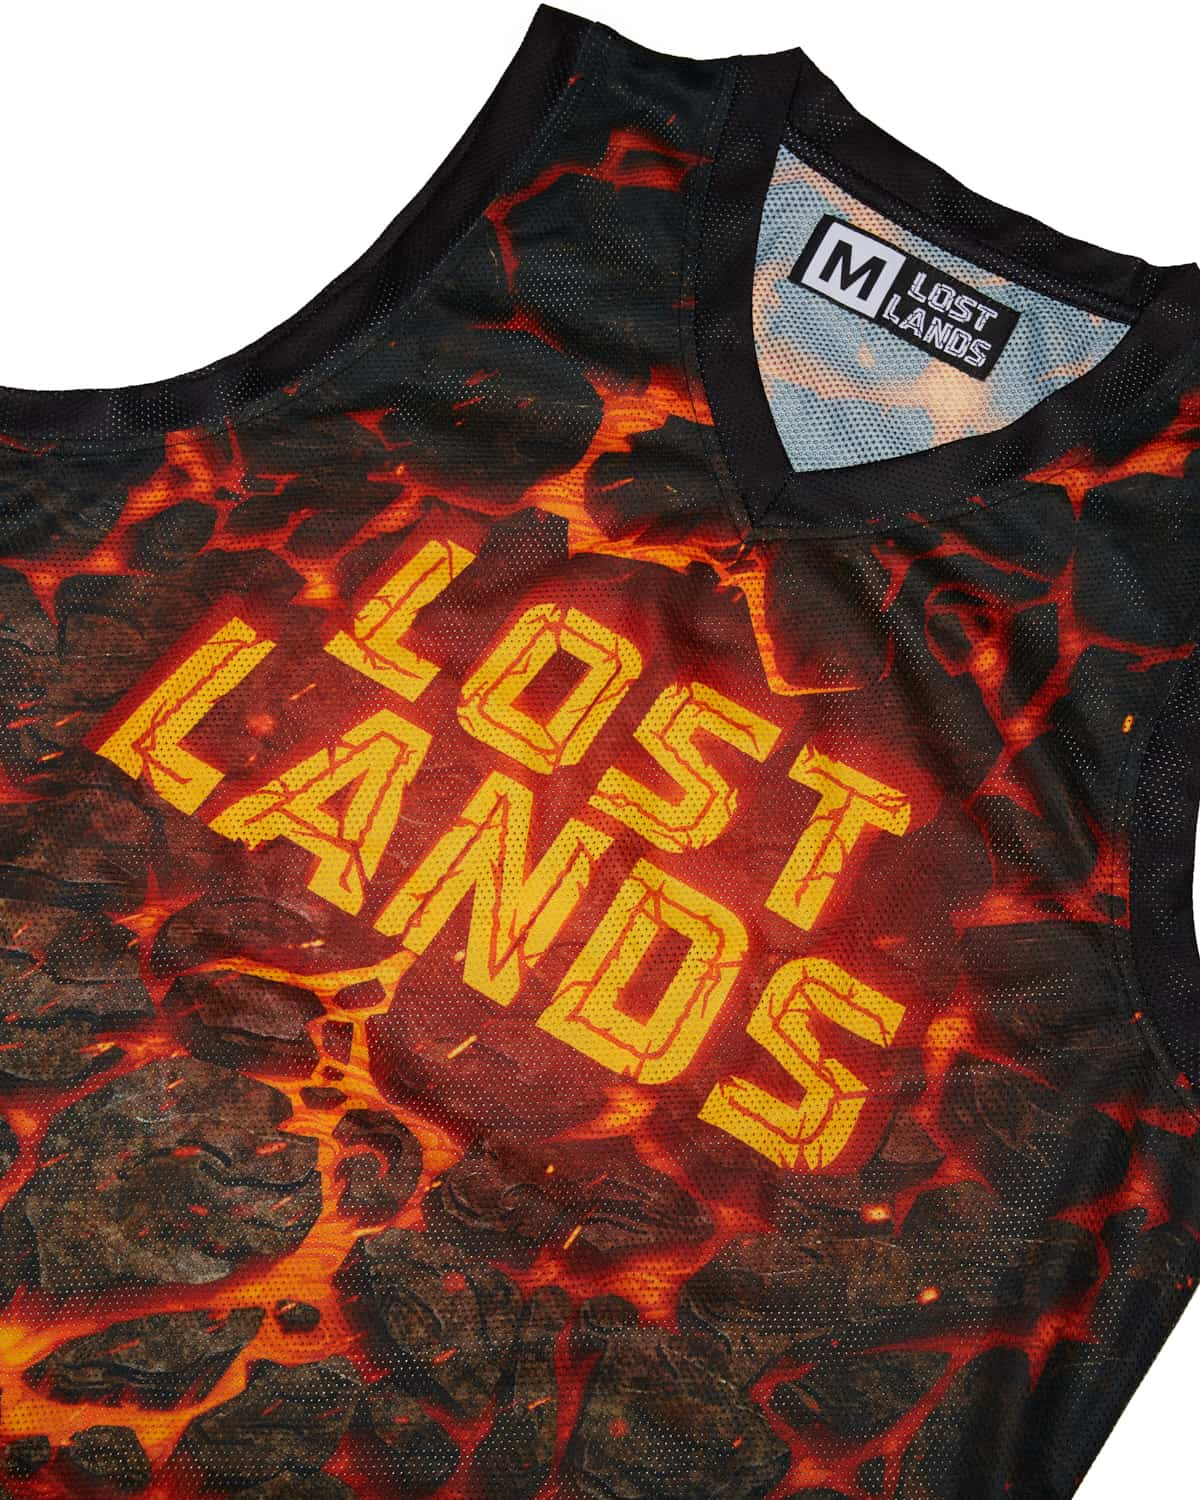 Lost Lands 2018 'Magma' Basketball Jersey - Black/Red